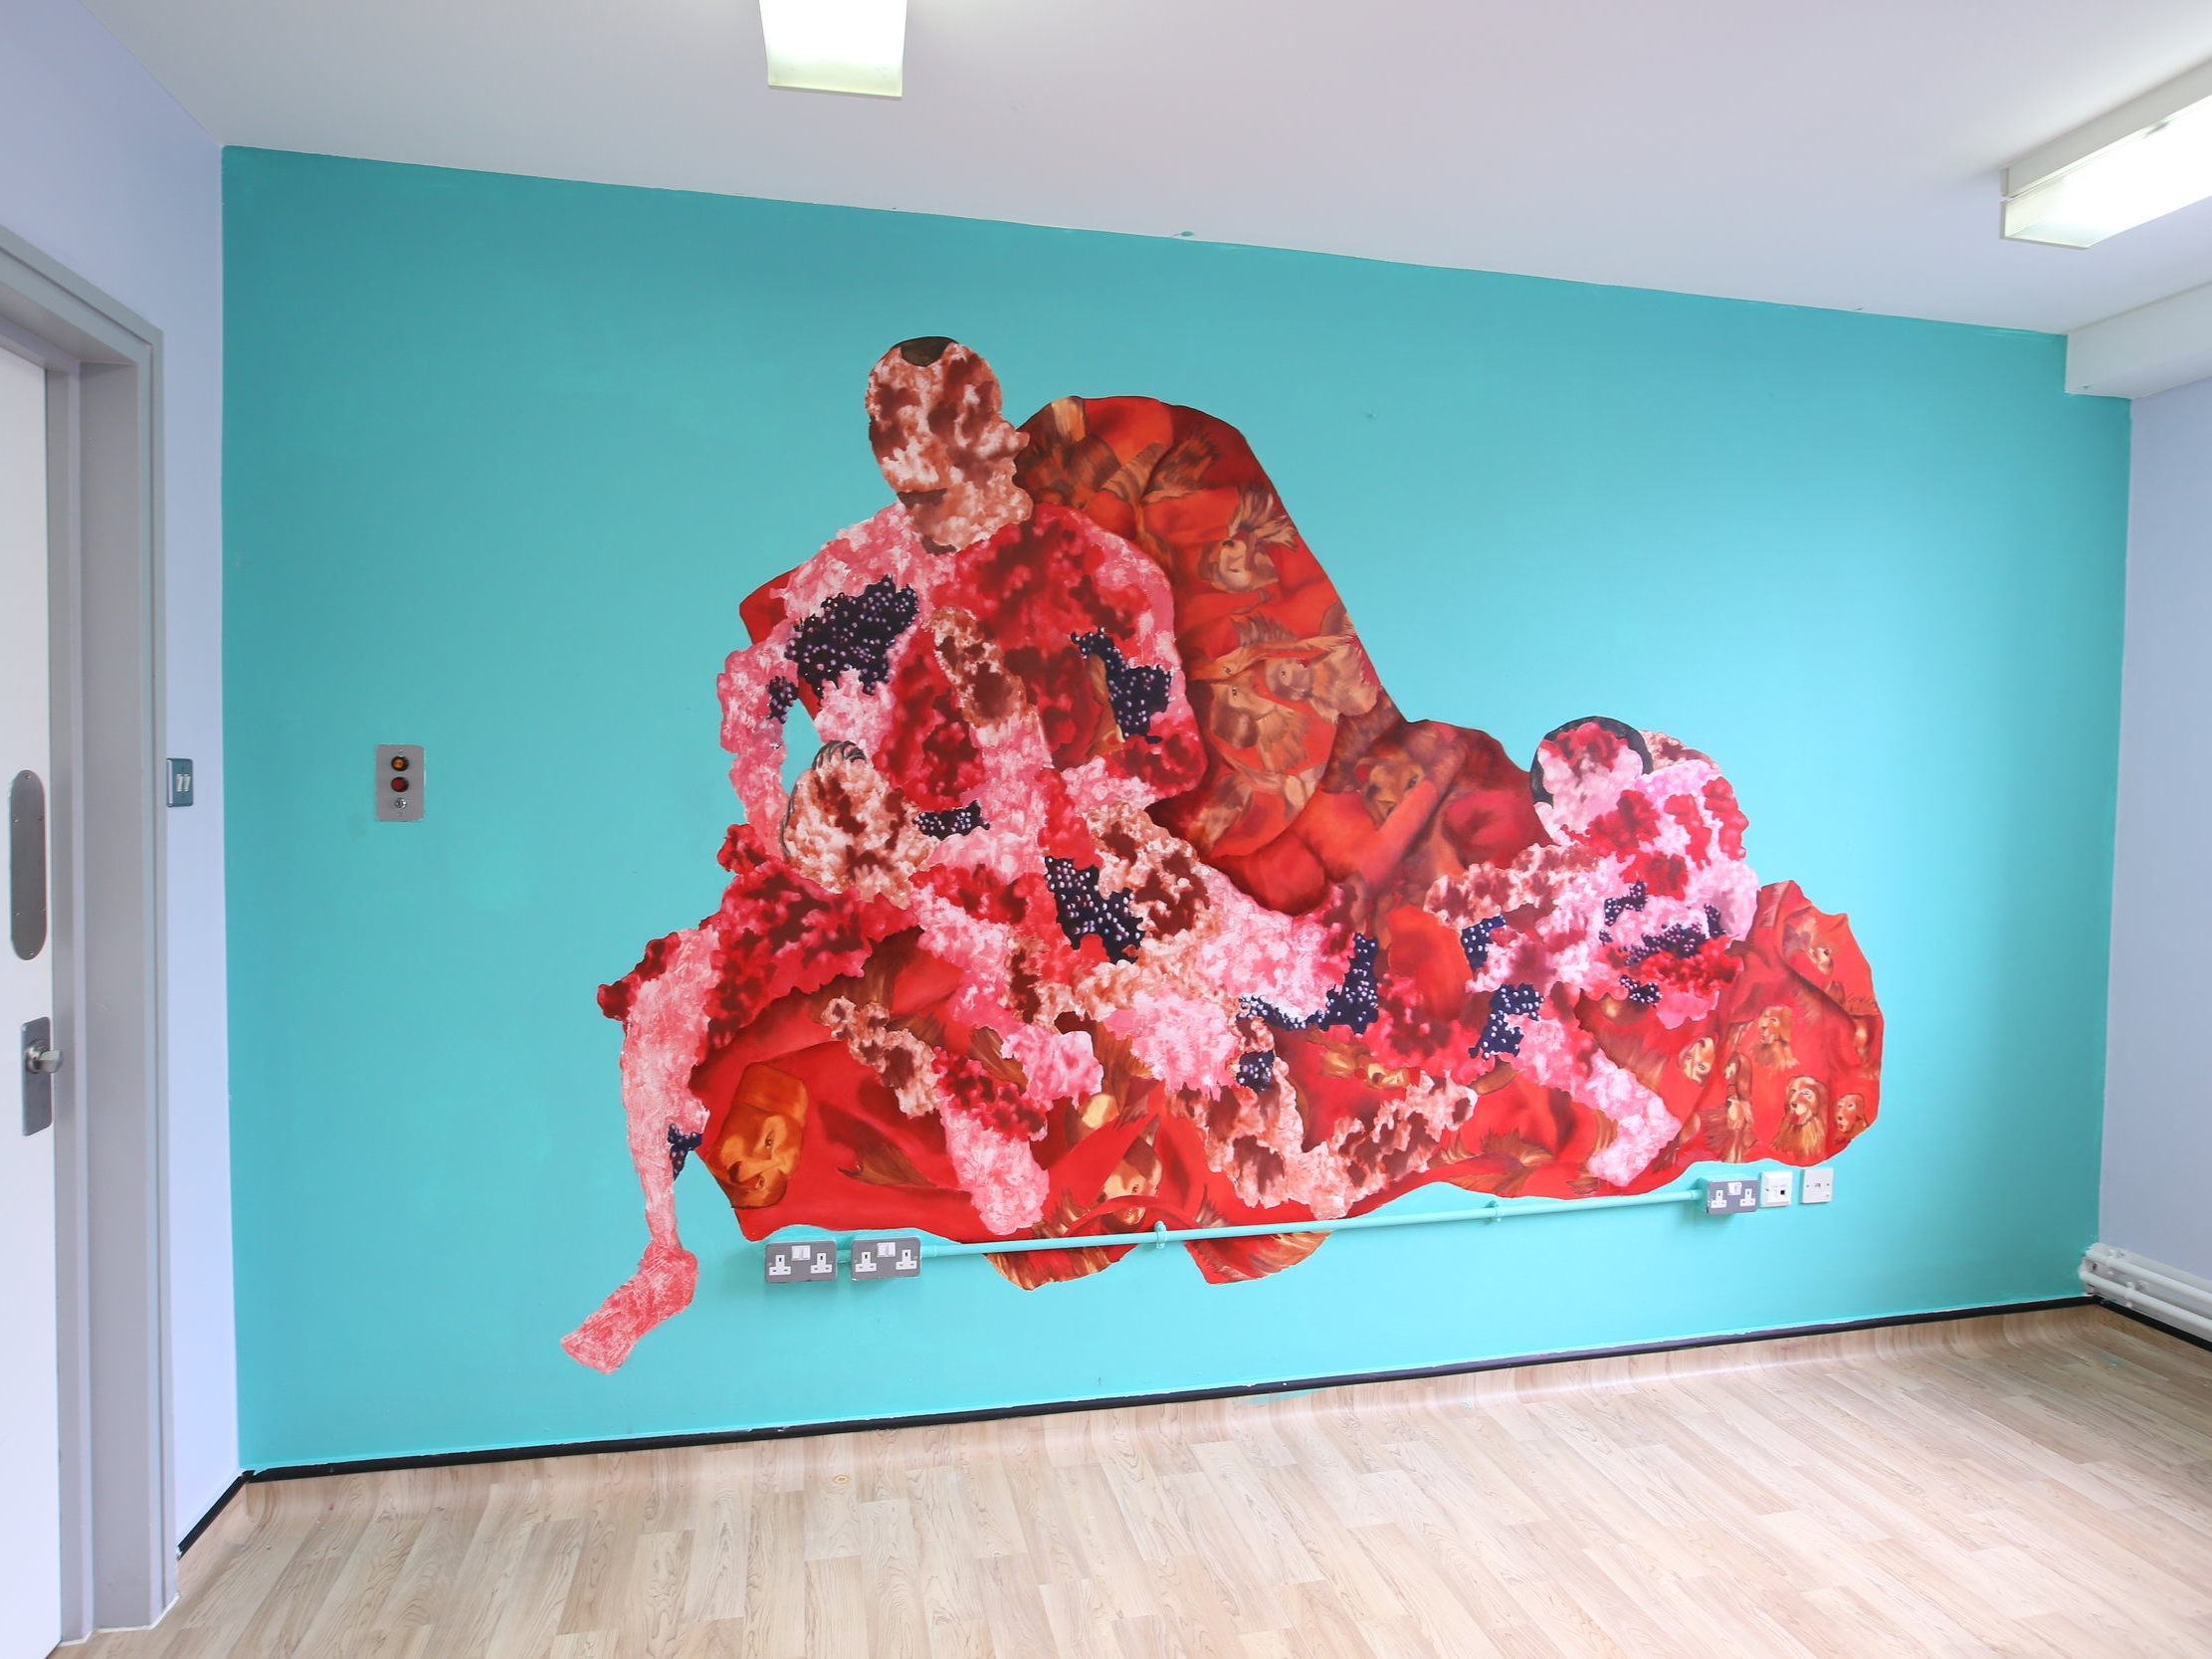 Eileen Skellern 1 and Hospital Rooms exhibition at Griffin Gallery in London -